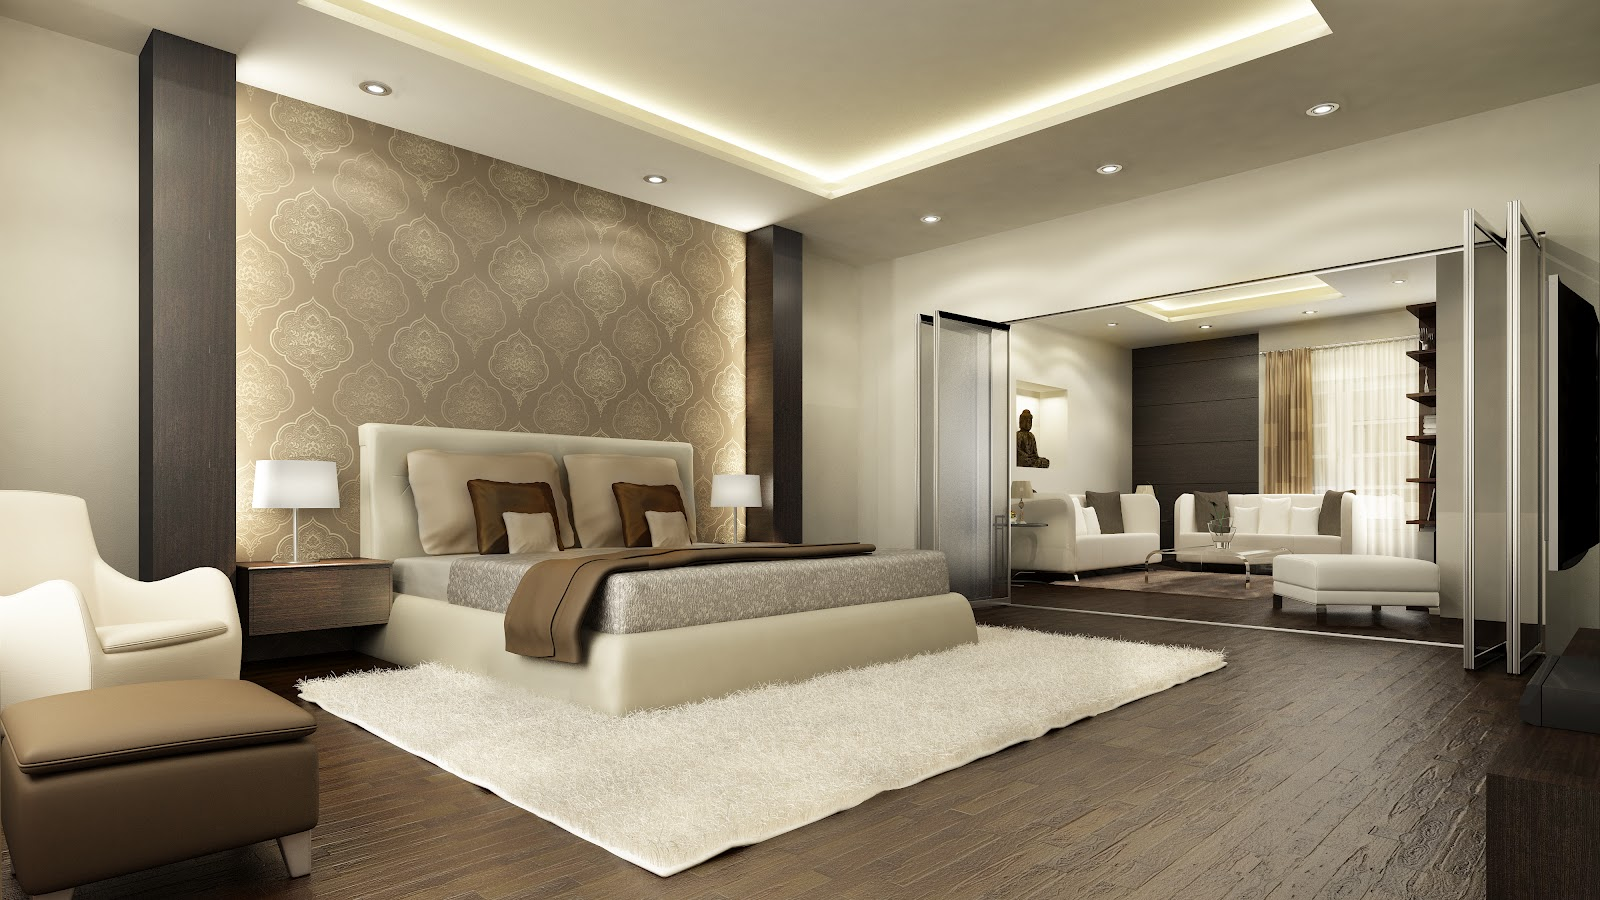 Buy luxury property flats homes for sale for Luxury modern bedroom